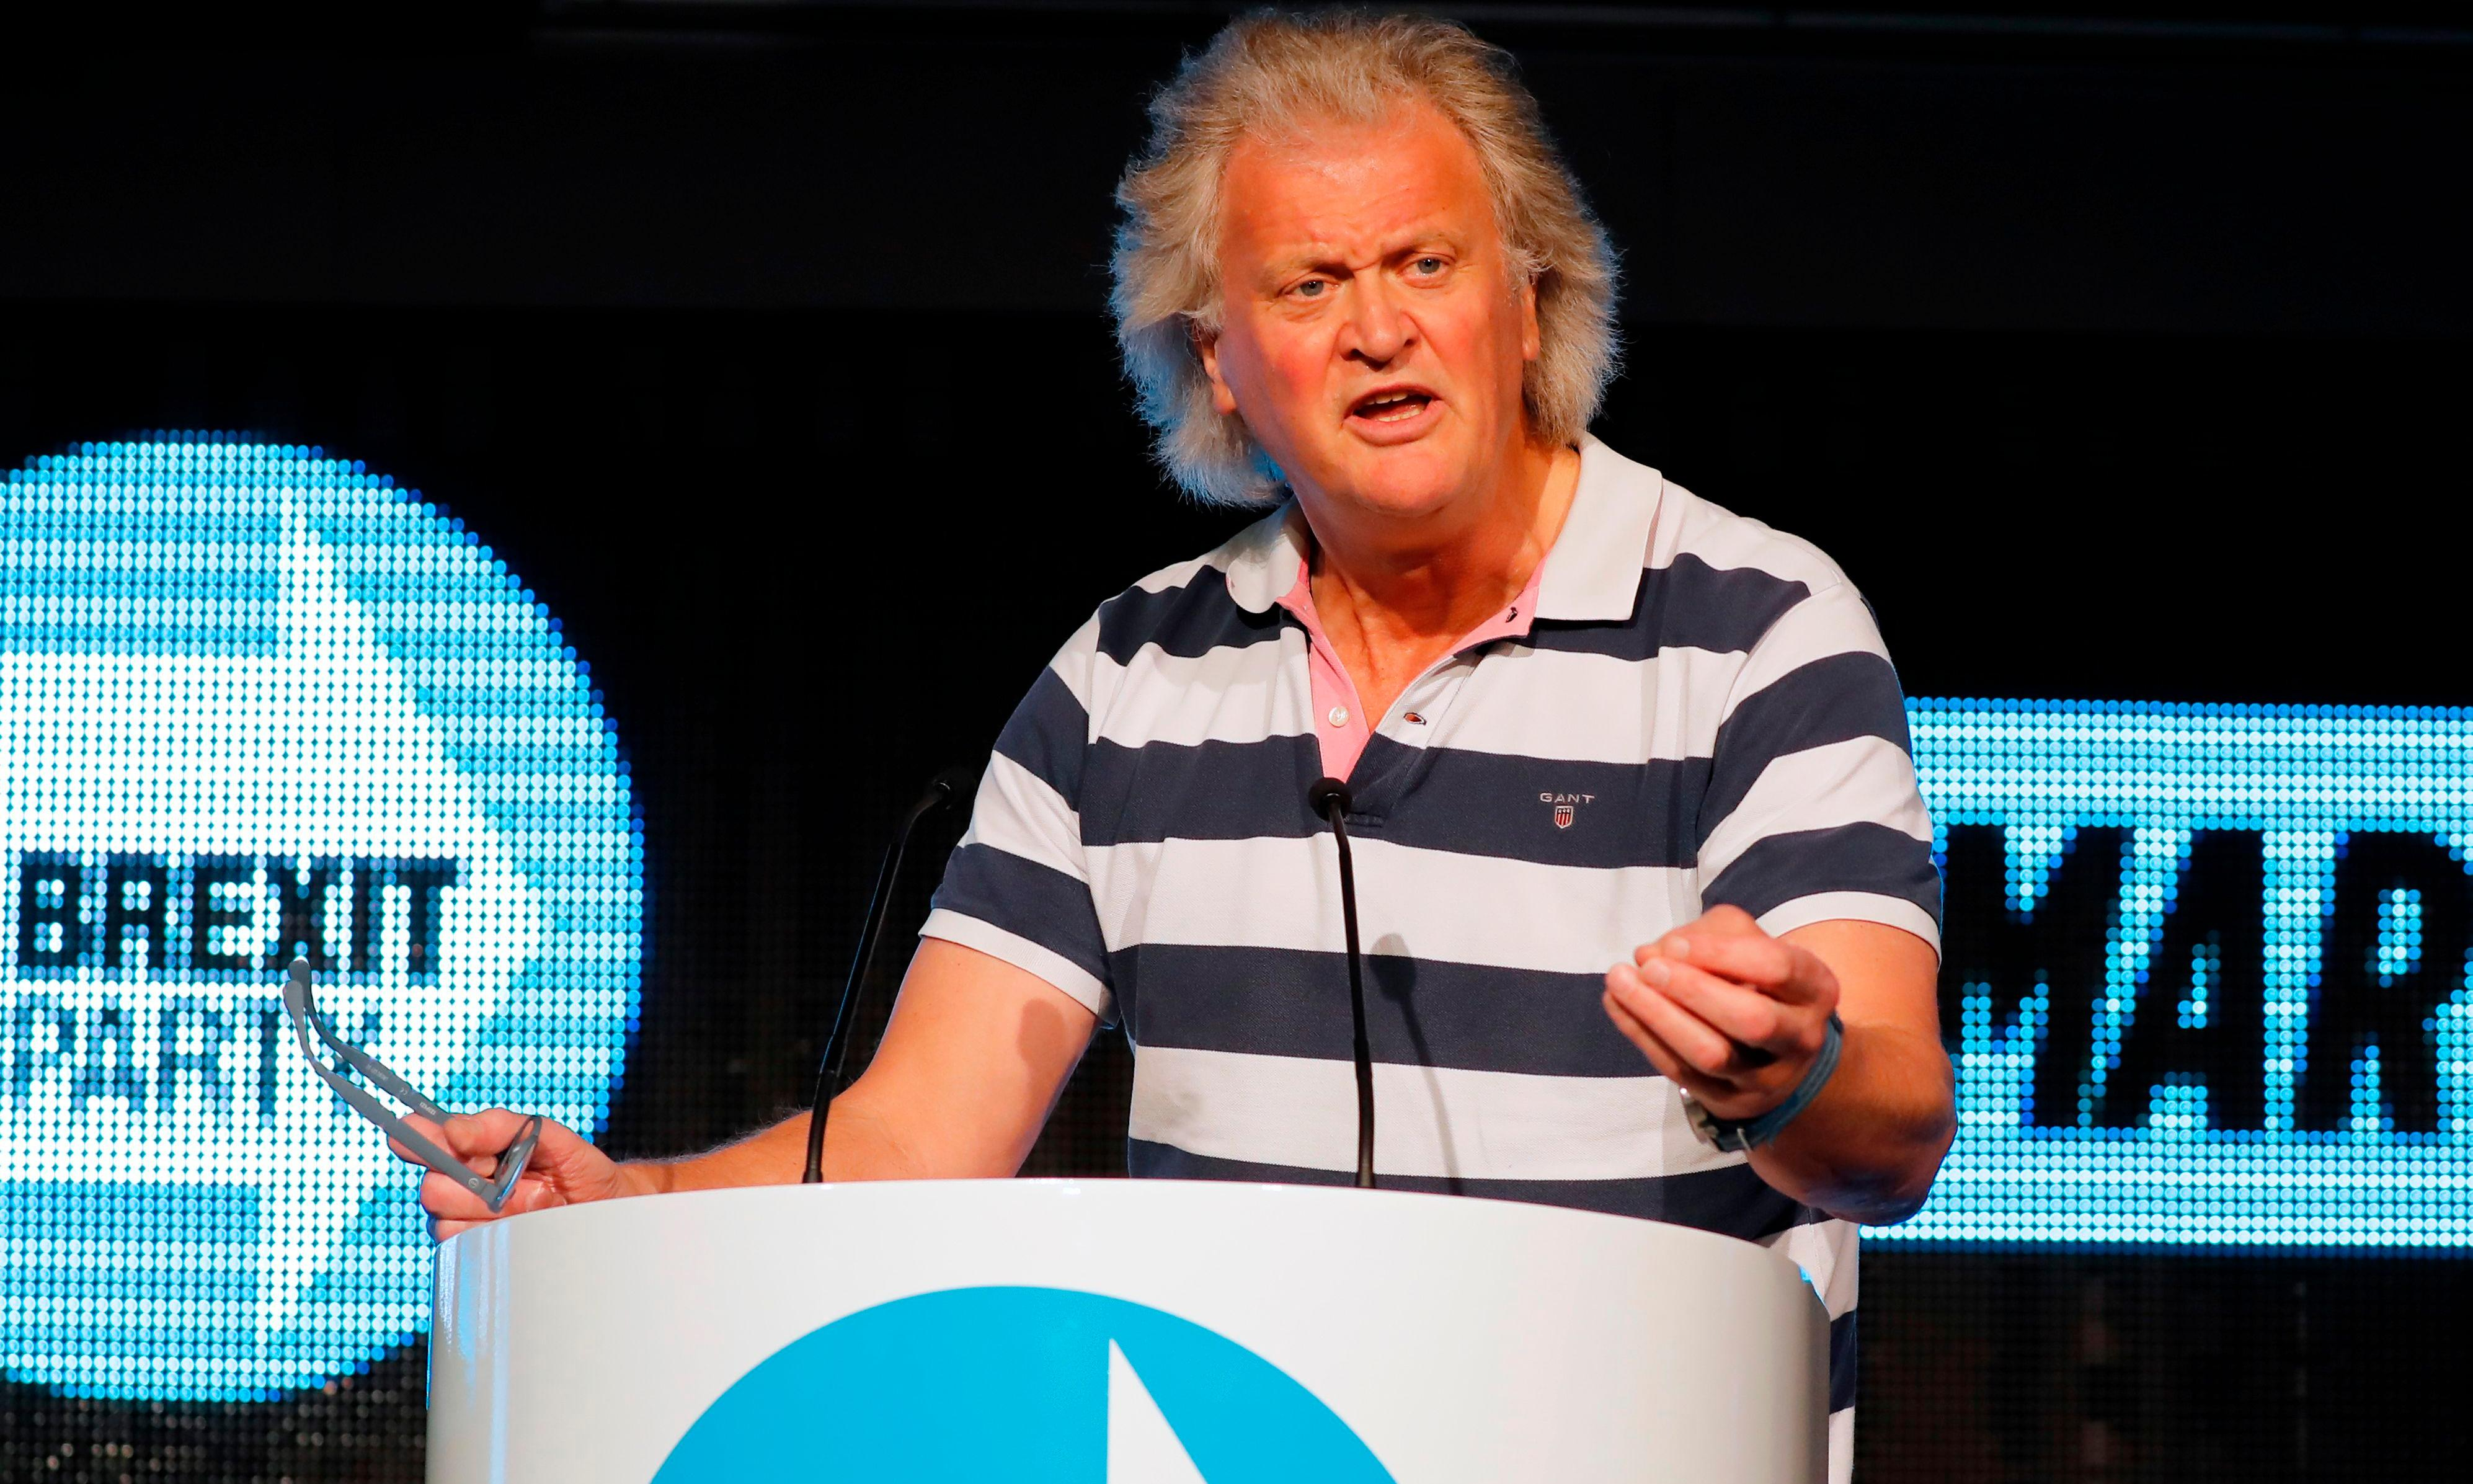 Shareholders back Wetherspoon chairman Tim Martin at AGM